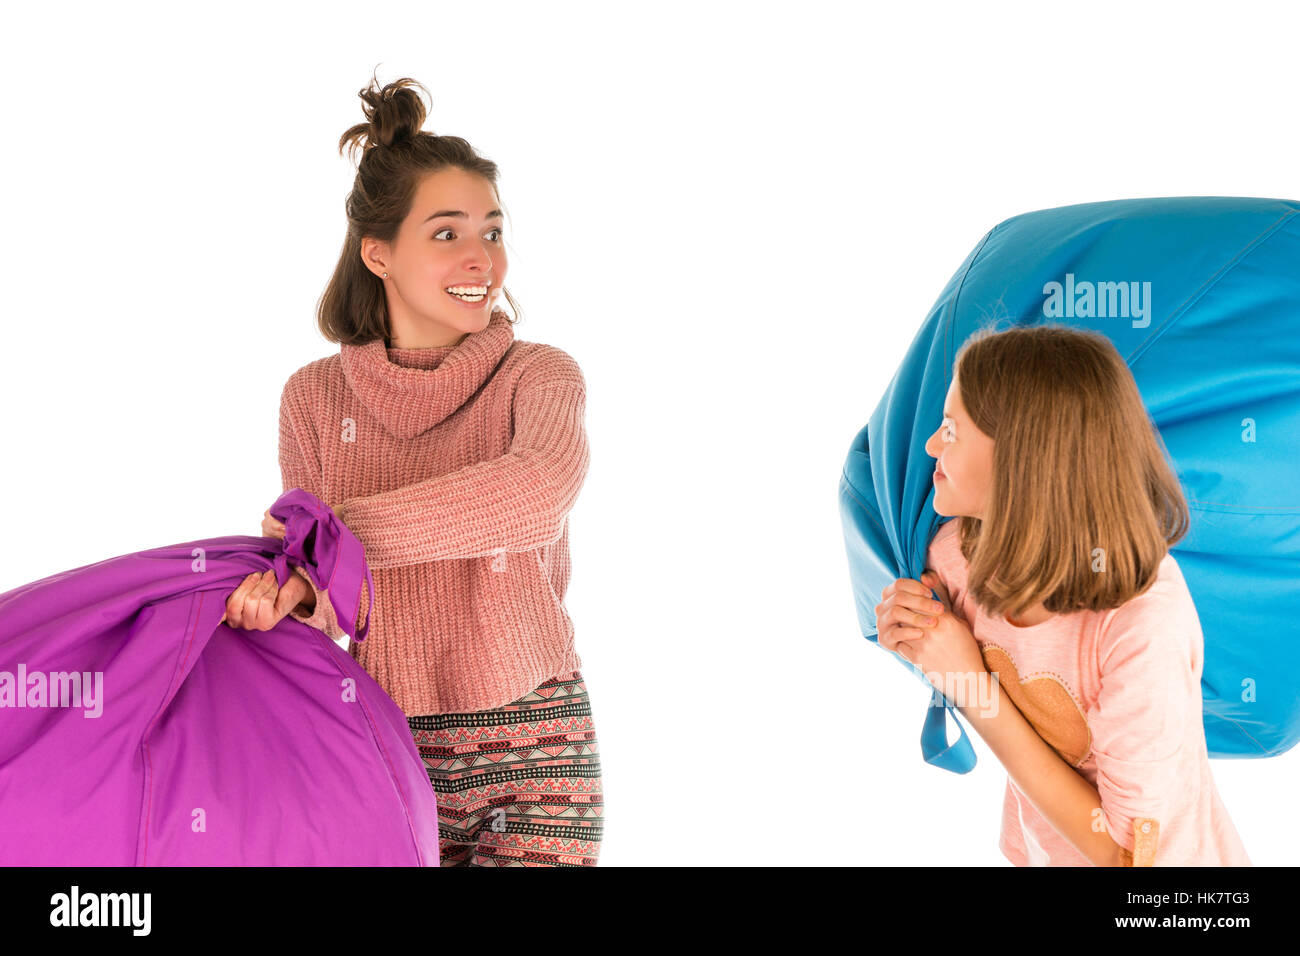 Young funny girls fighting with beanbag chairs isolated on white background - Stock Image